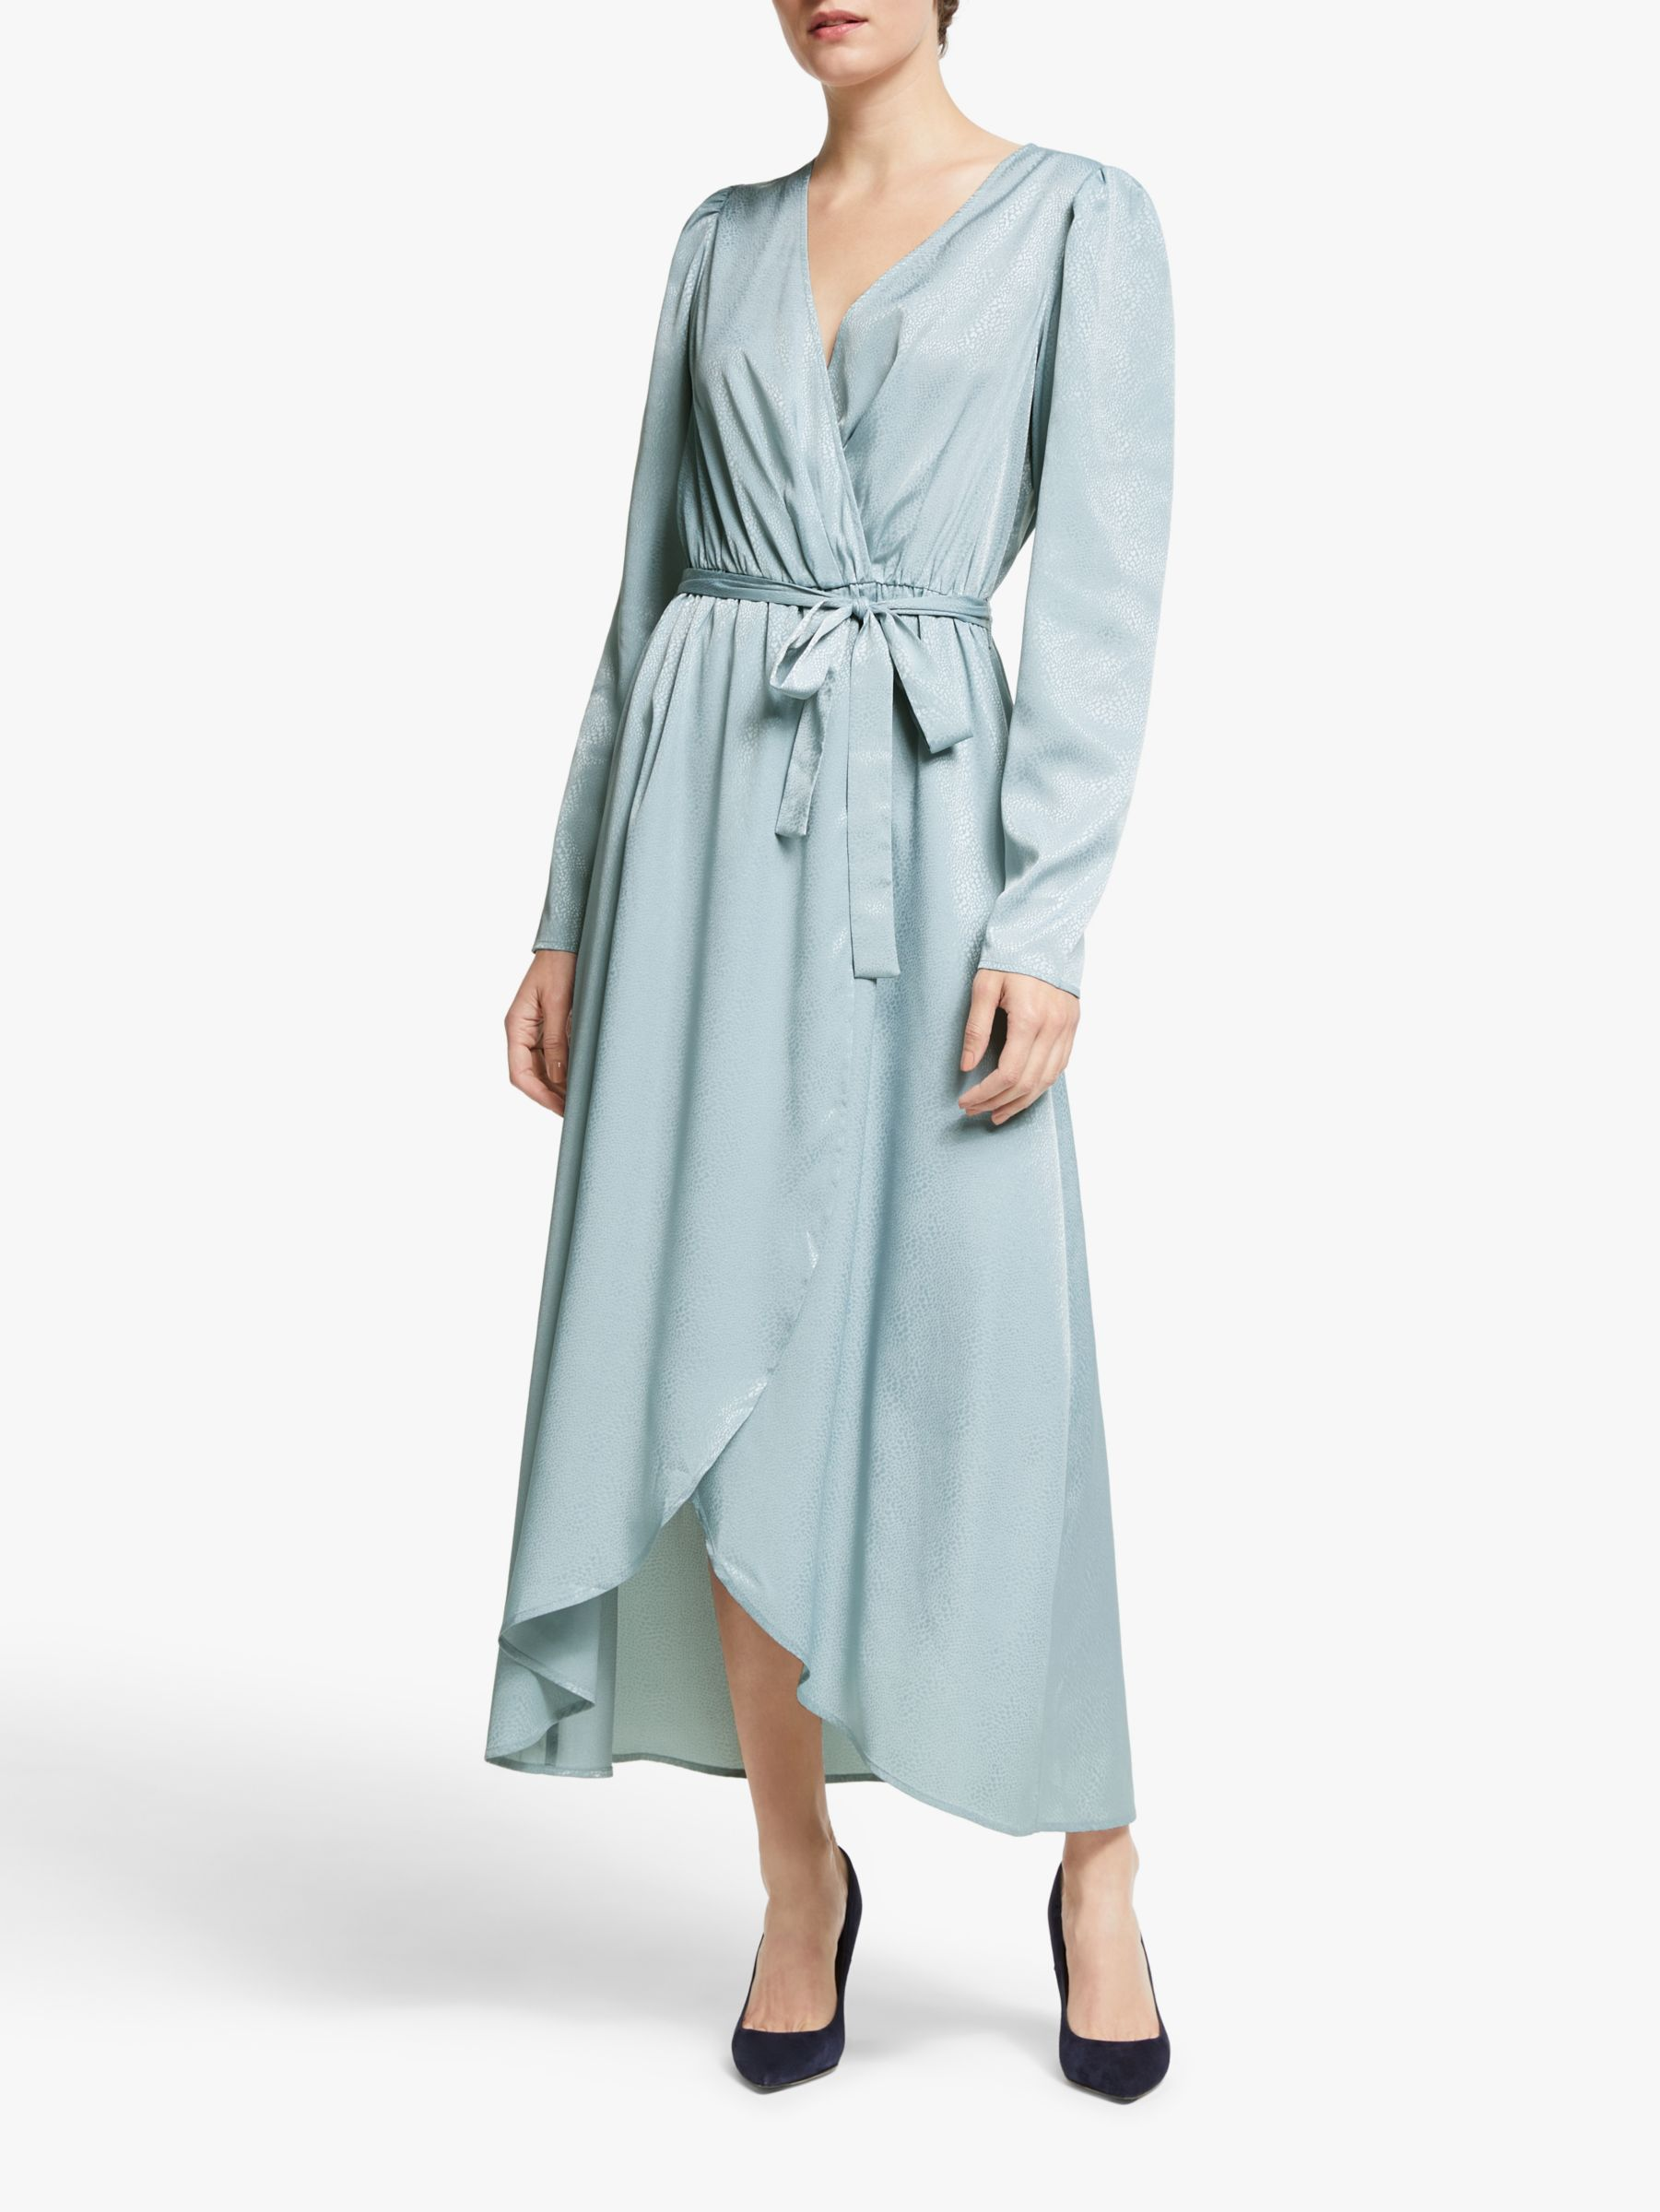 Vero Moda AWARE BY VERO MODA Julia Wrap Dress